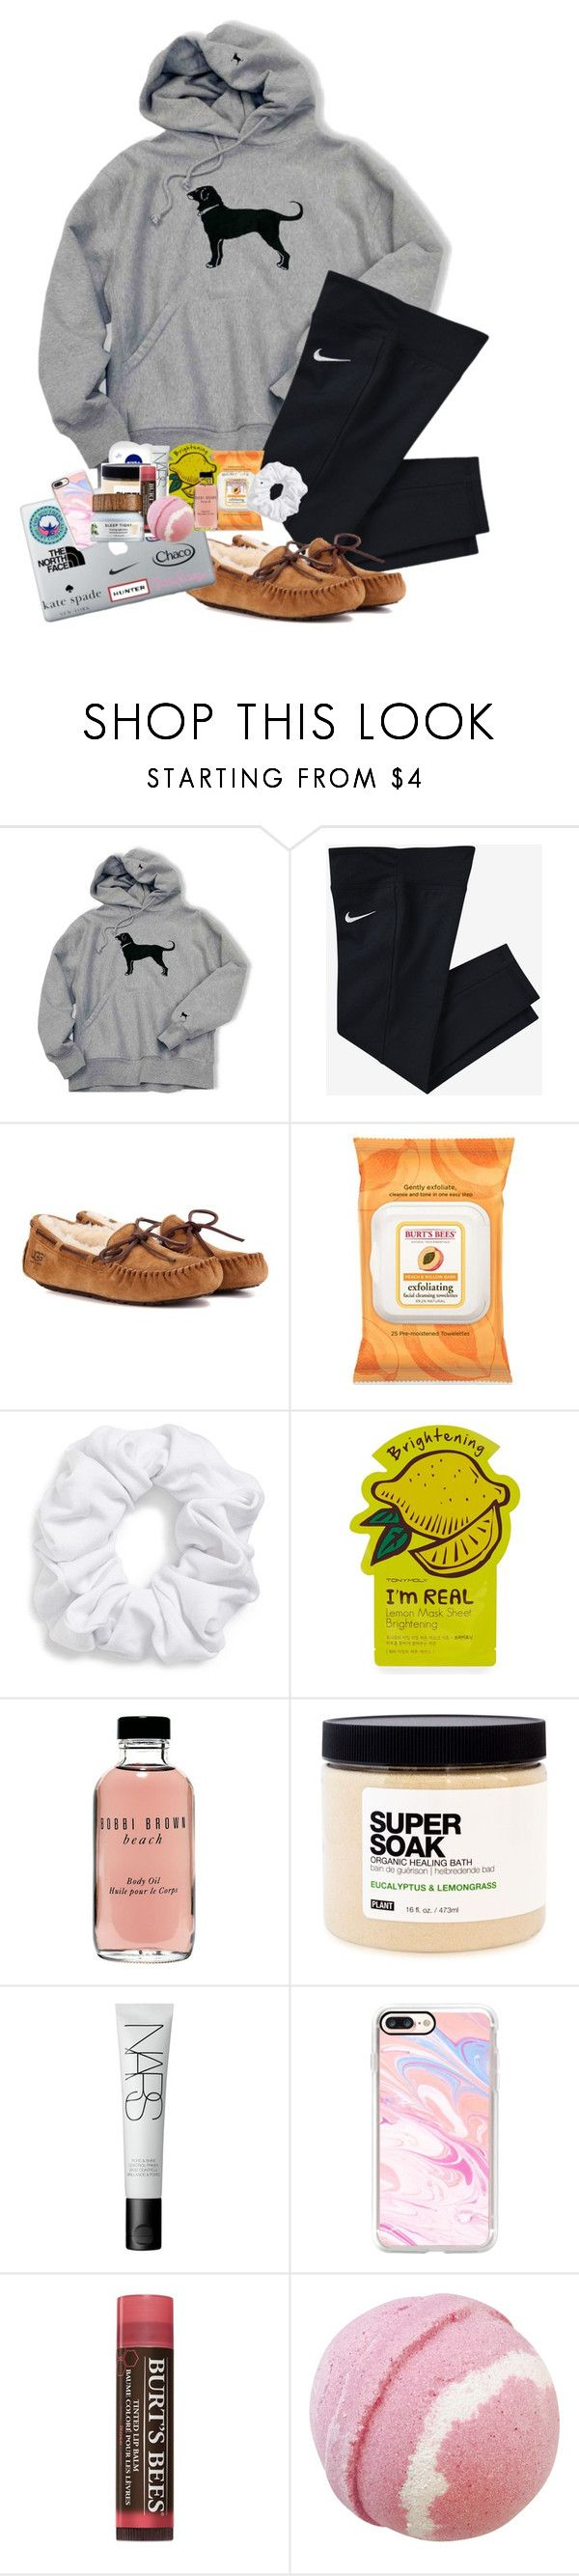 """""""My lazy day outfit """" by rachelxchaney ❤ liked on Polyvore featuring NIKE, UGG, Burt's Bees, Natasha, Tony Moly, Bobbi Brown Cosmetics, Plant Apothecary, NARS Cosmetics, Casetify and Farmacy"""